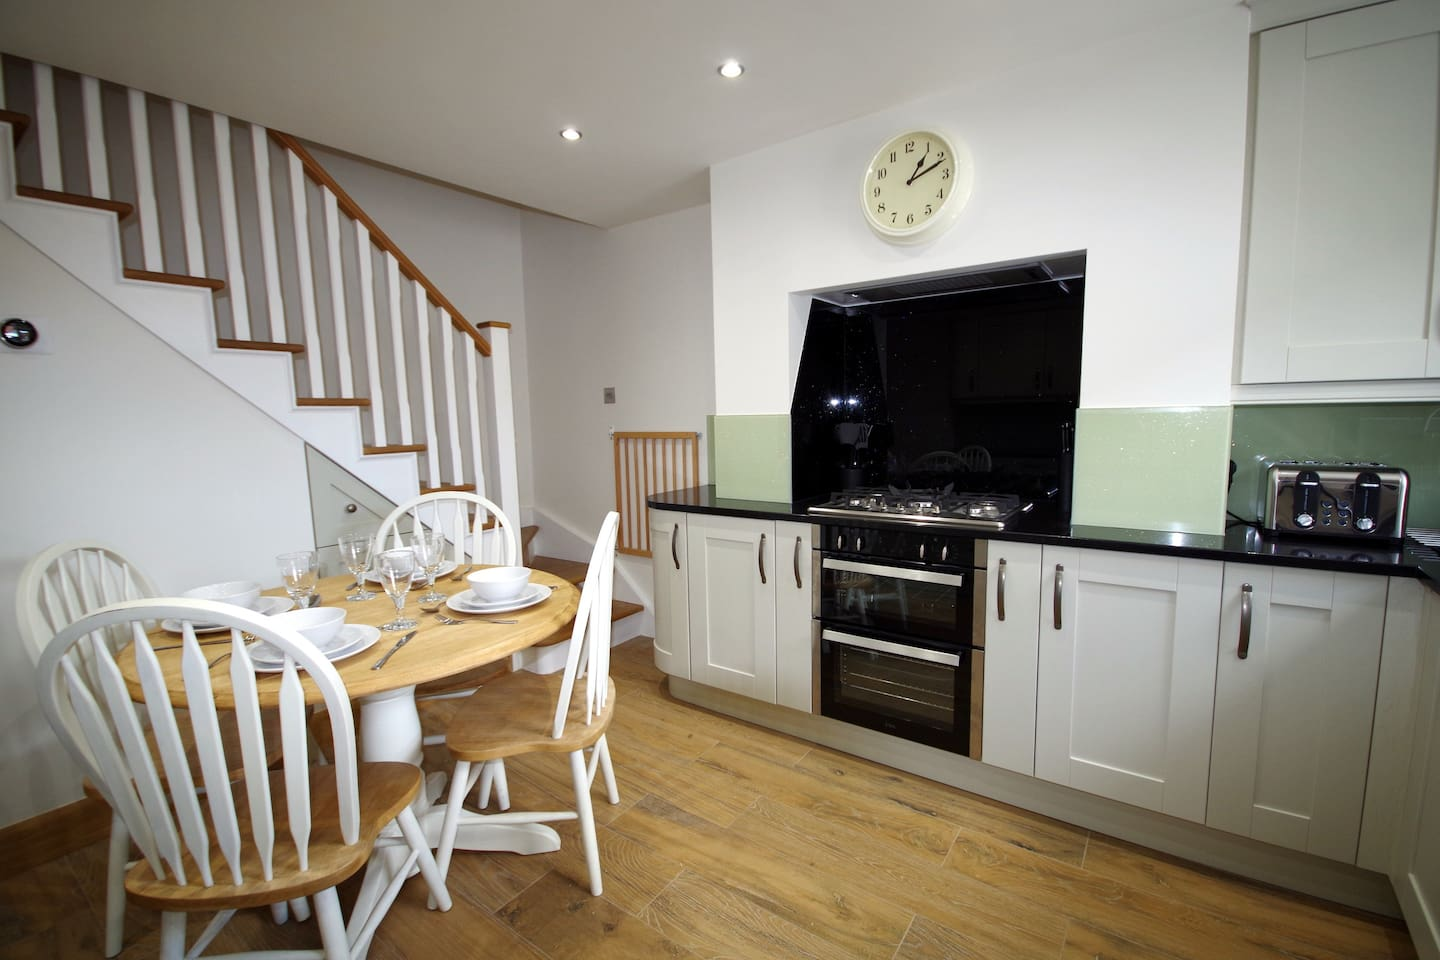 Fully fitted dining kitchen with 5 burner gas hob, electric oven & grill. Fridge, freezer, dishwasher, washer/dryer, microwave, toaster and kettle. Full range of cooking utensils, crockery, knives and forks.